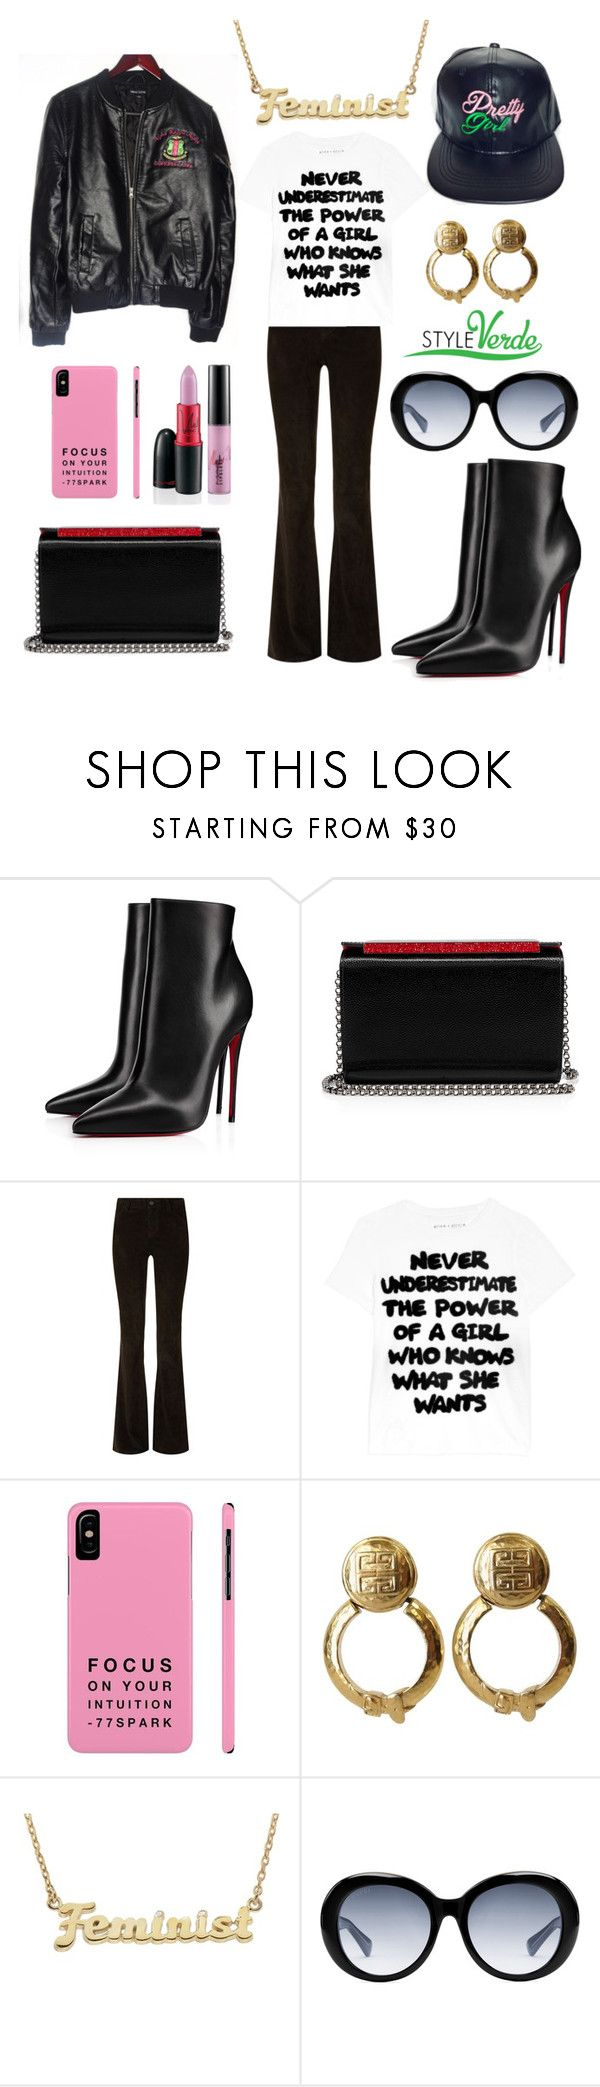 """FEMINIST..."" by cagreinvented on Polyvore featuring Christian Louboutin, Alice + Olivia, Nicki Minaj, Givenchy, me you and Gucci"